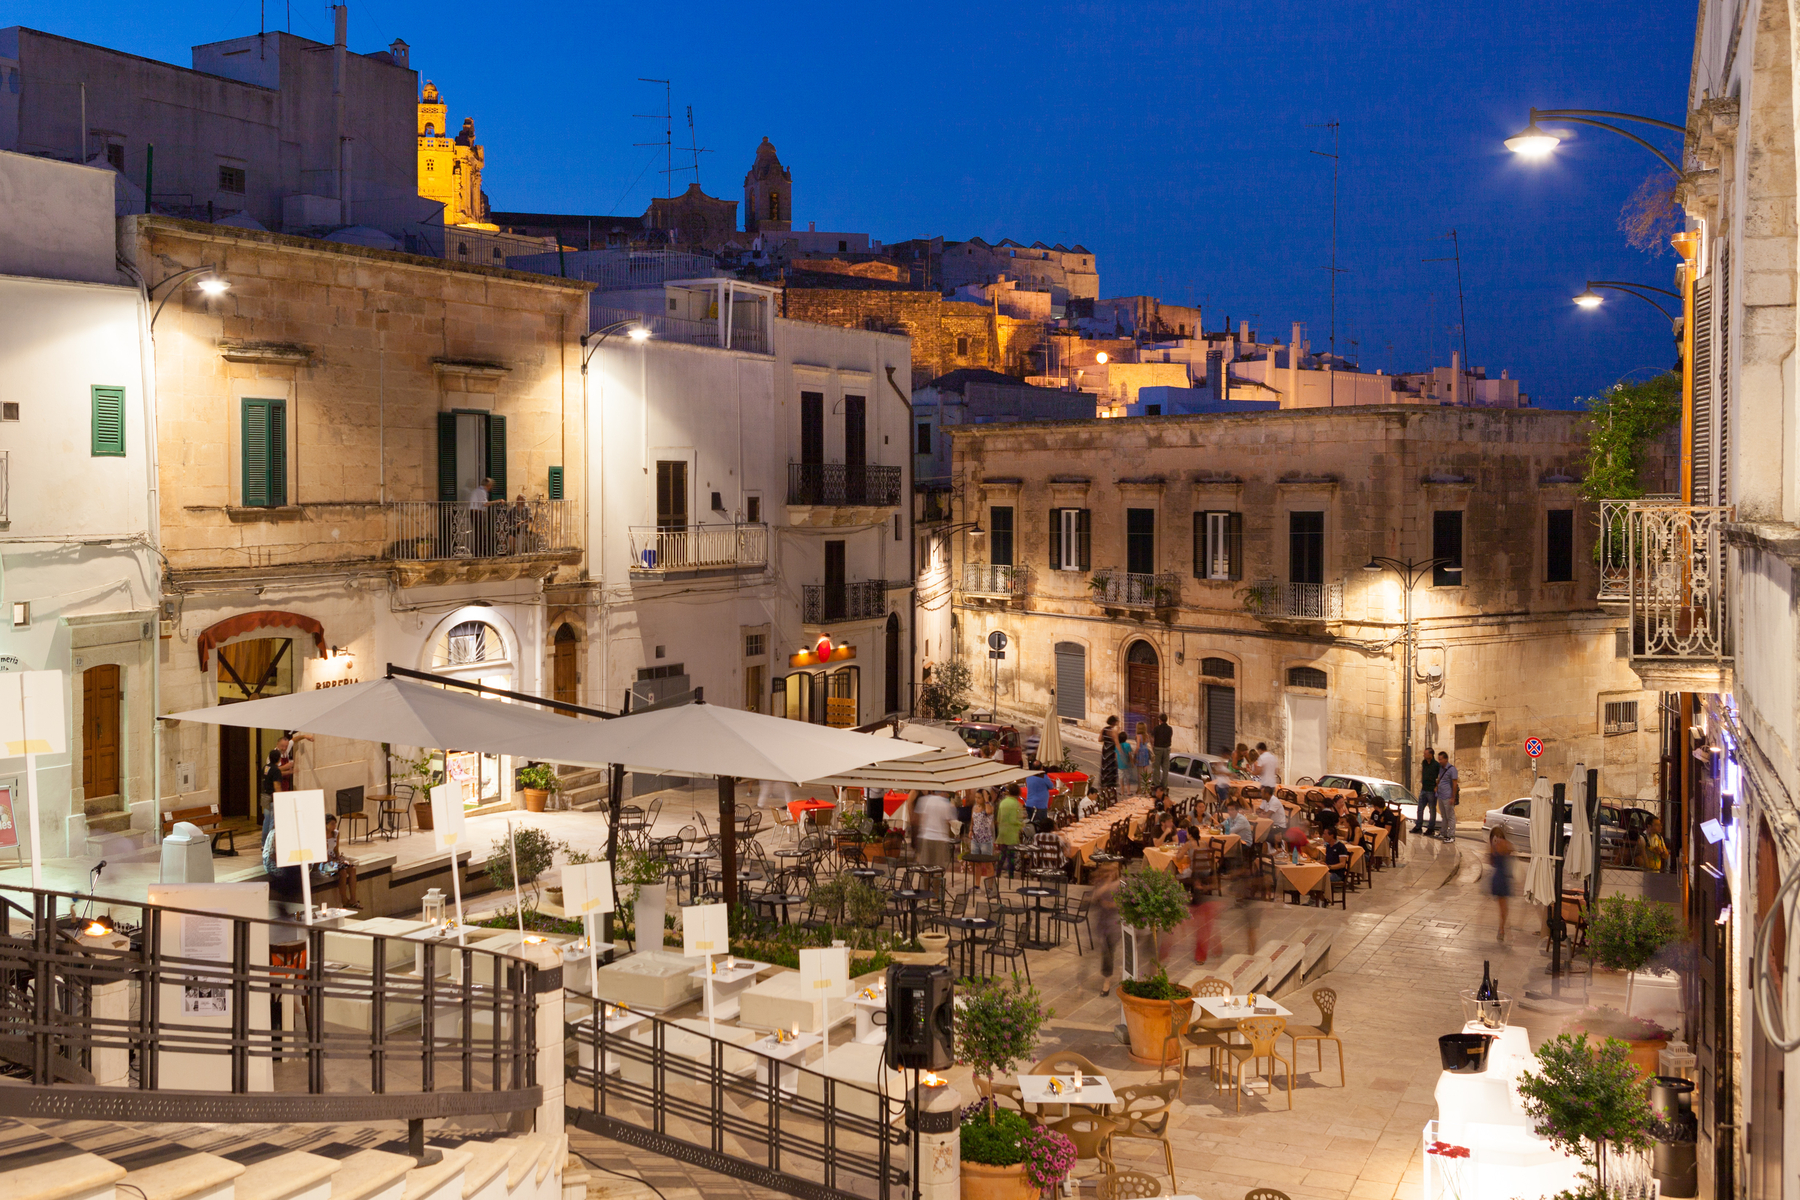 Old town with restaurants in Ostuni, Italy